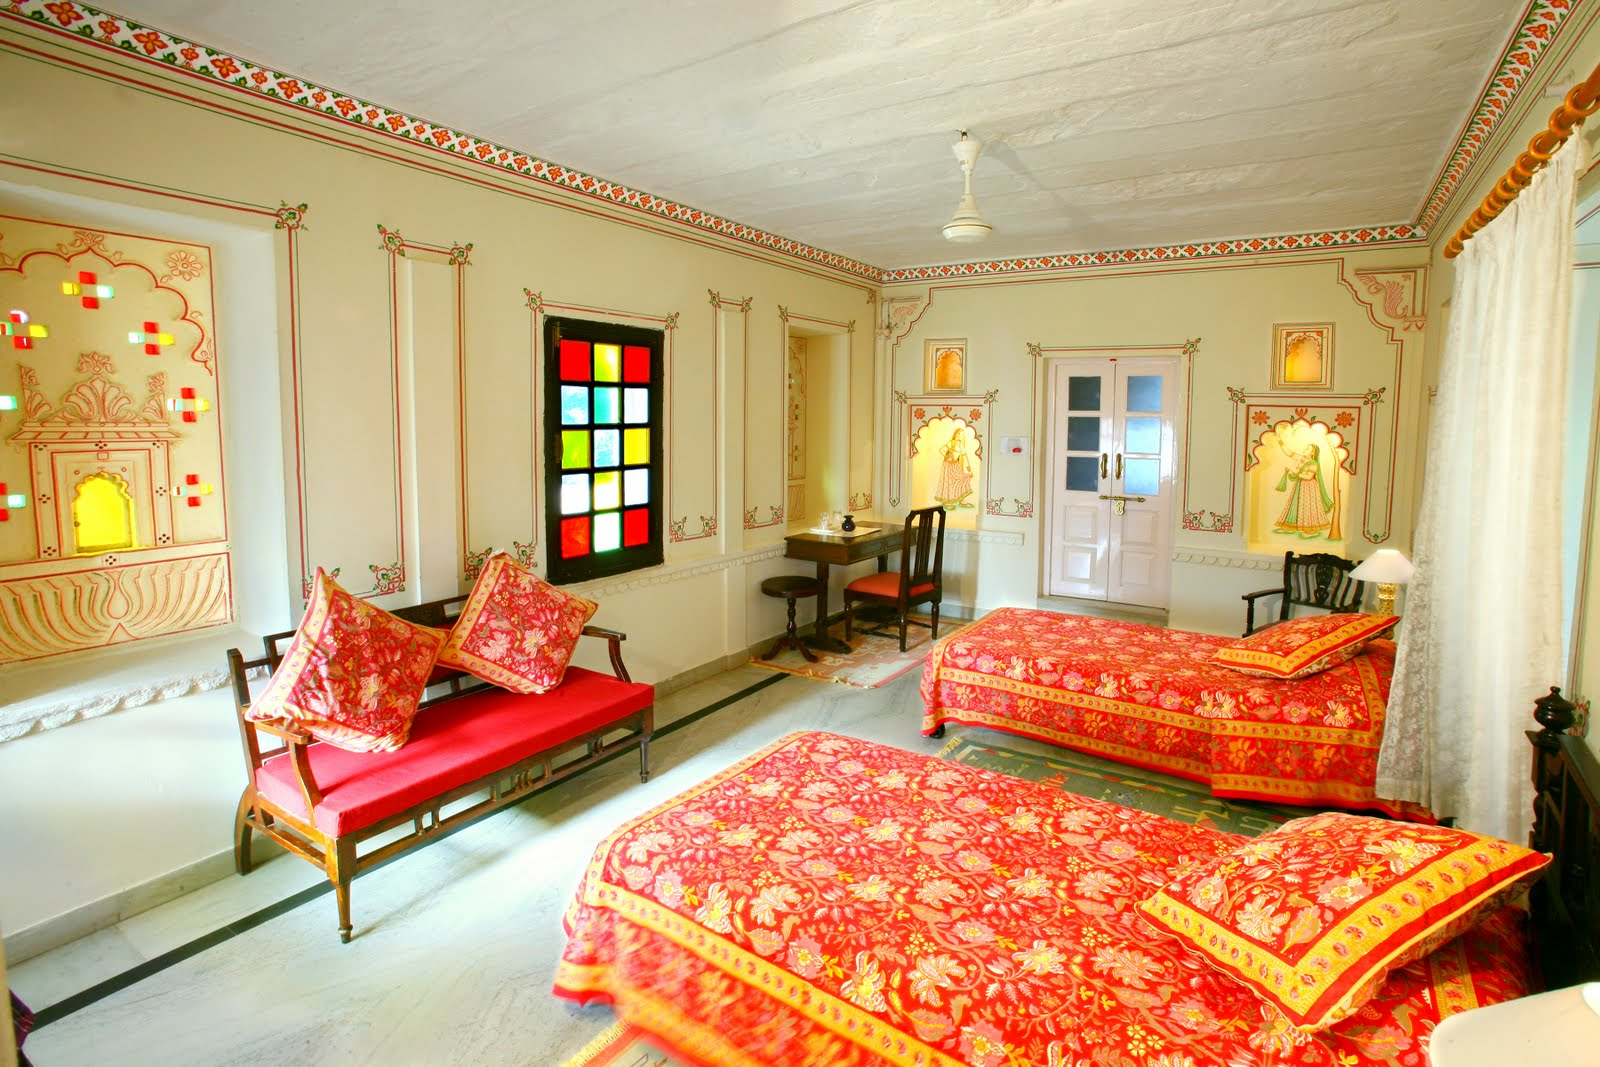 Rajasthani style interior design ideas palace interiors for Interior design ideas indian style